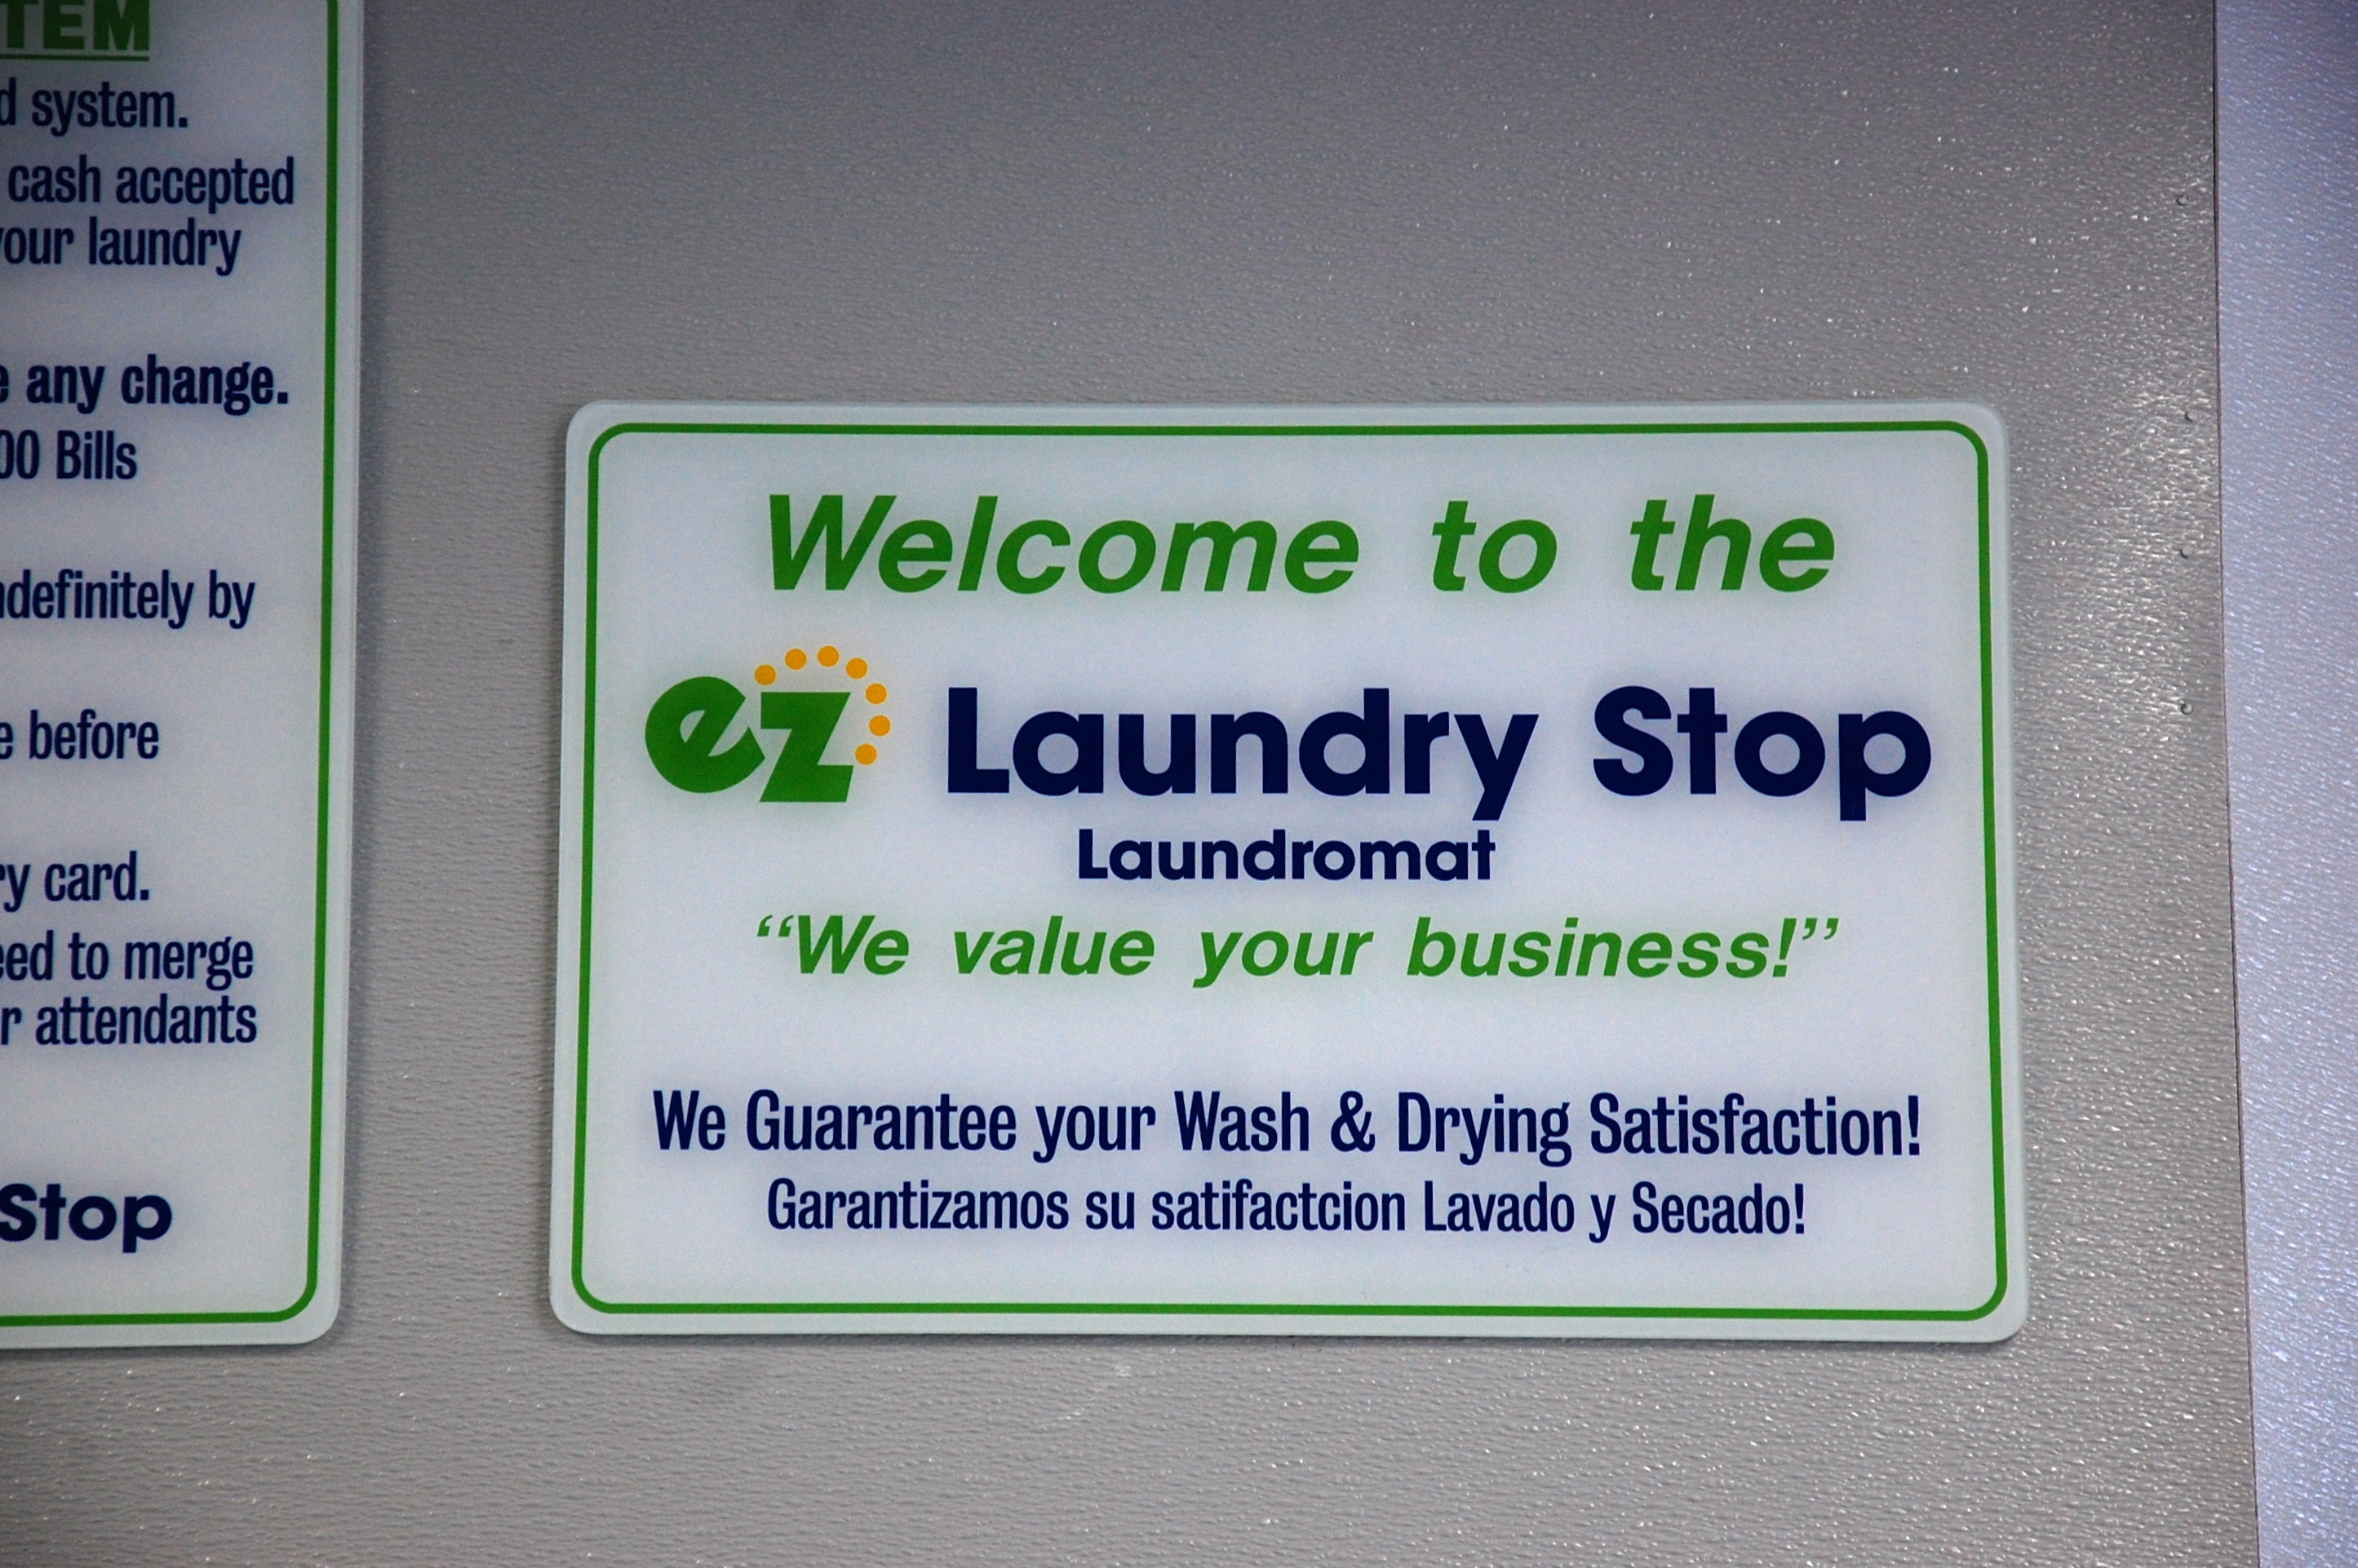 A basic promise that every Laundromat should make - 100% satisfaction. Thumbnail